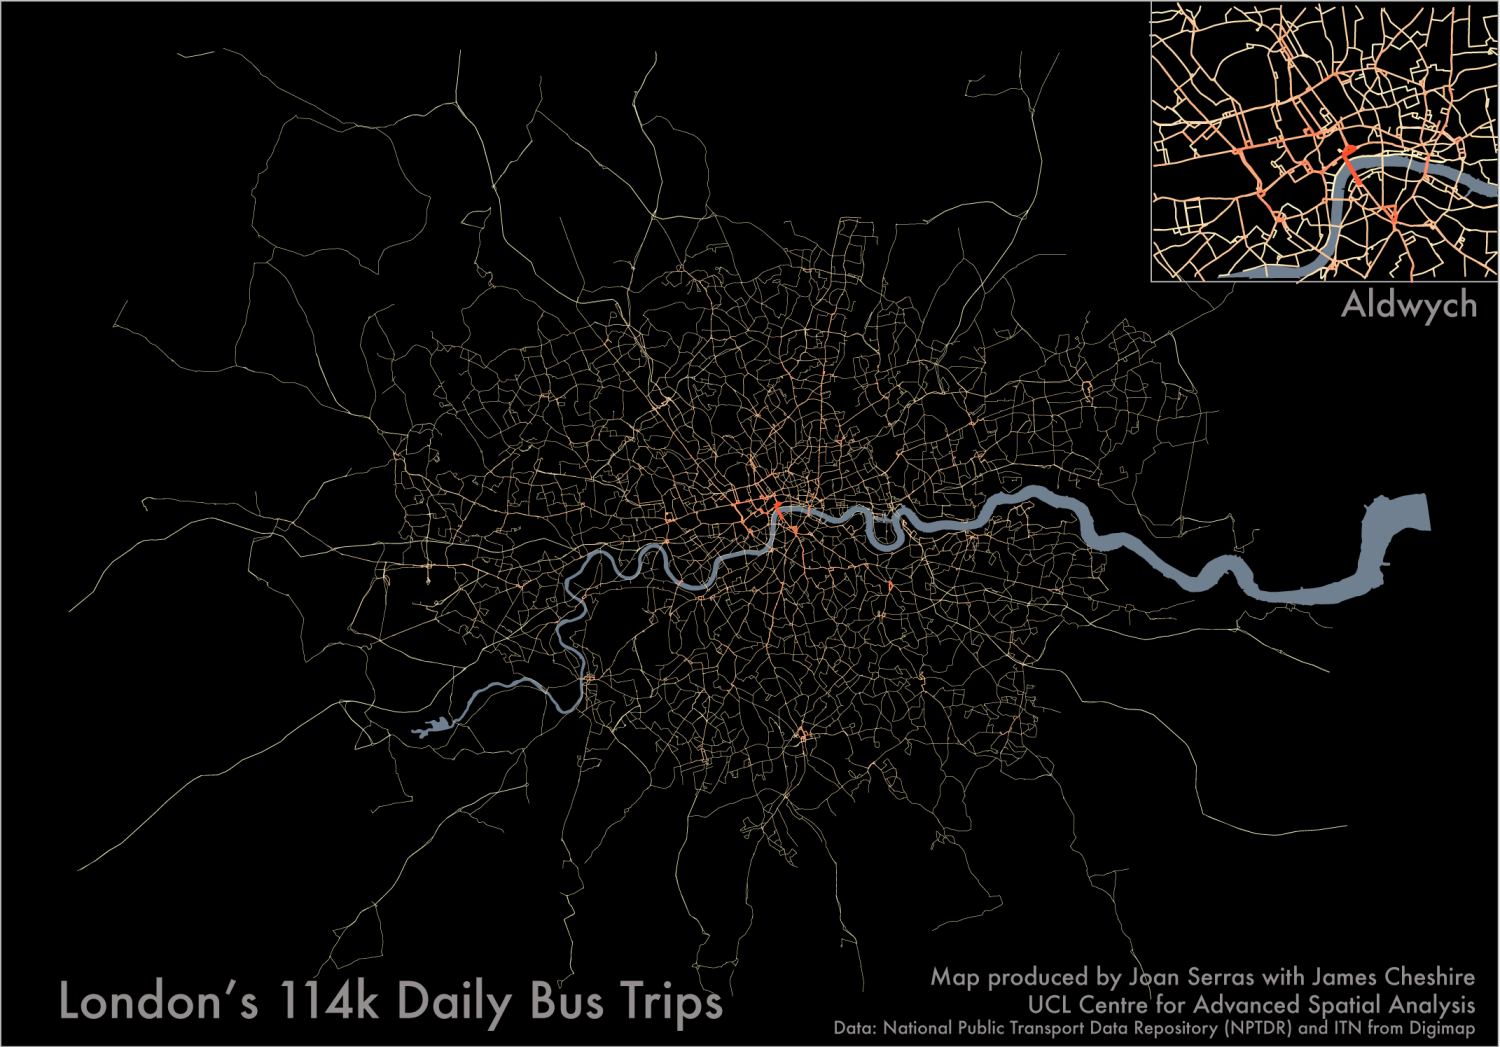 London's 114k Daily Bus Trips Infographic